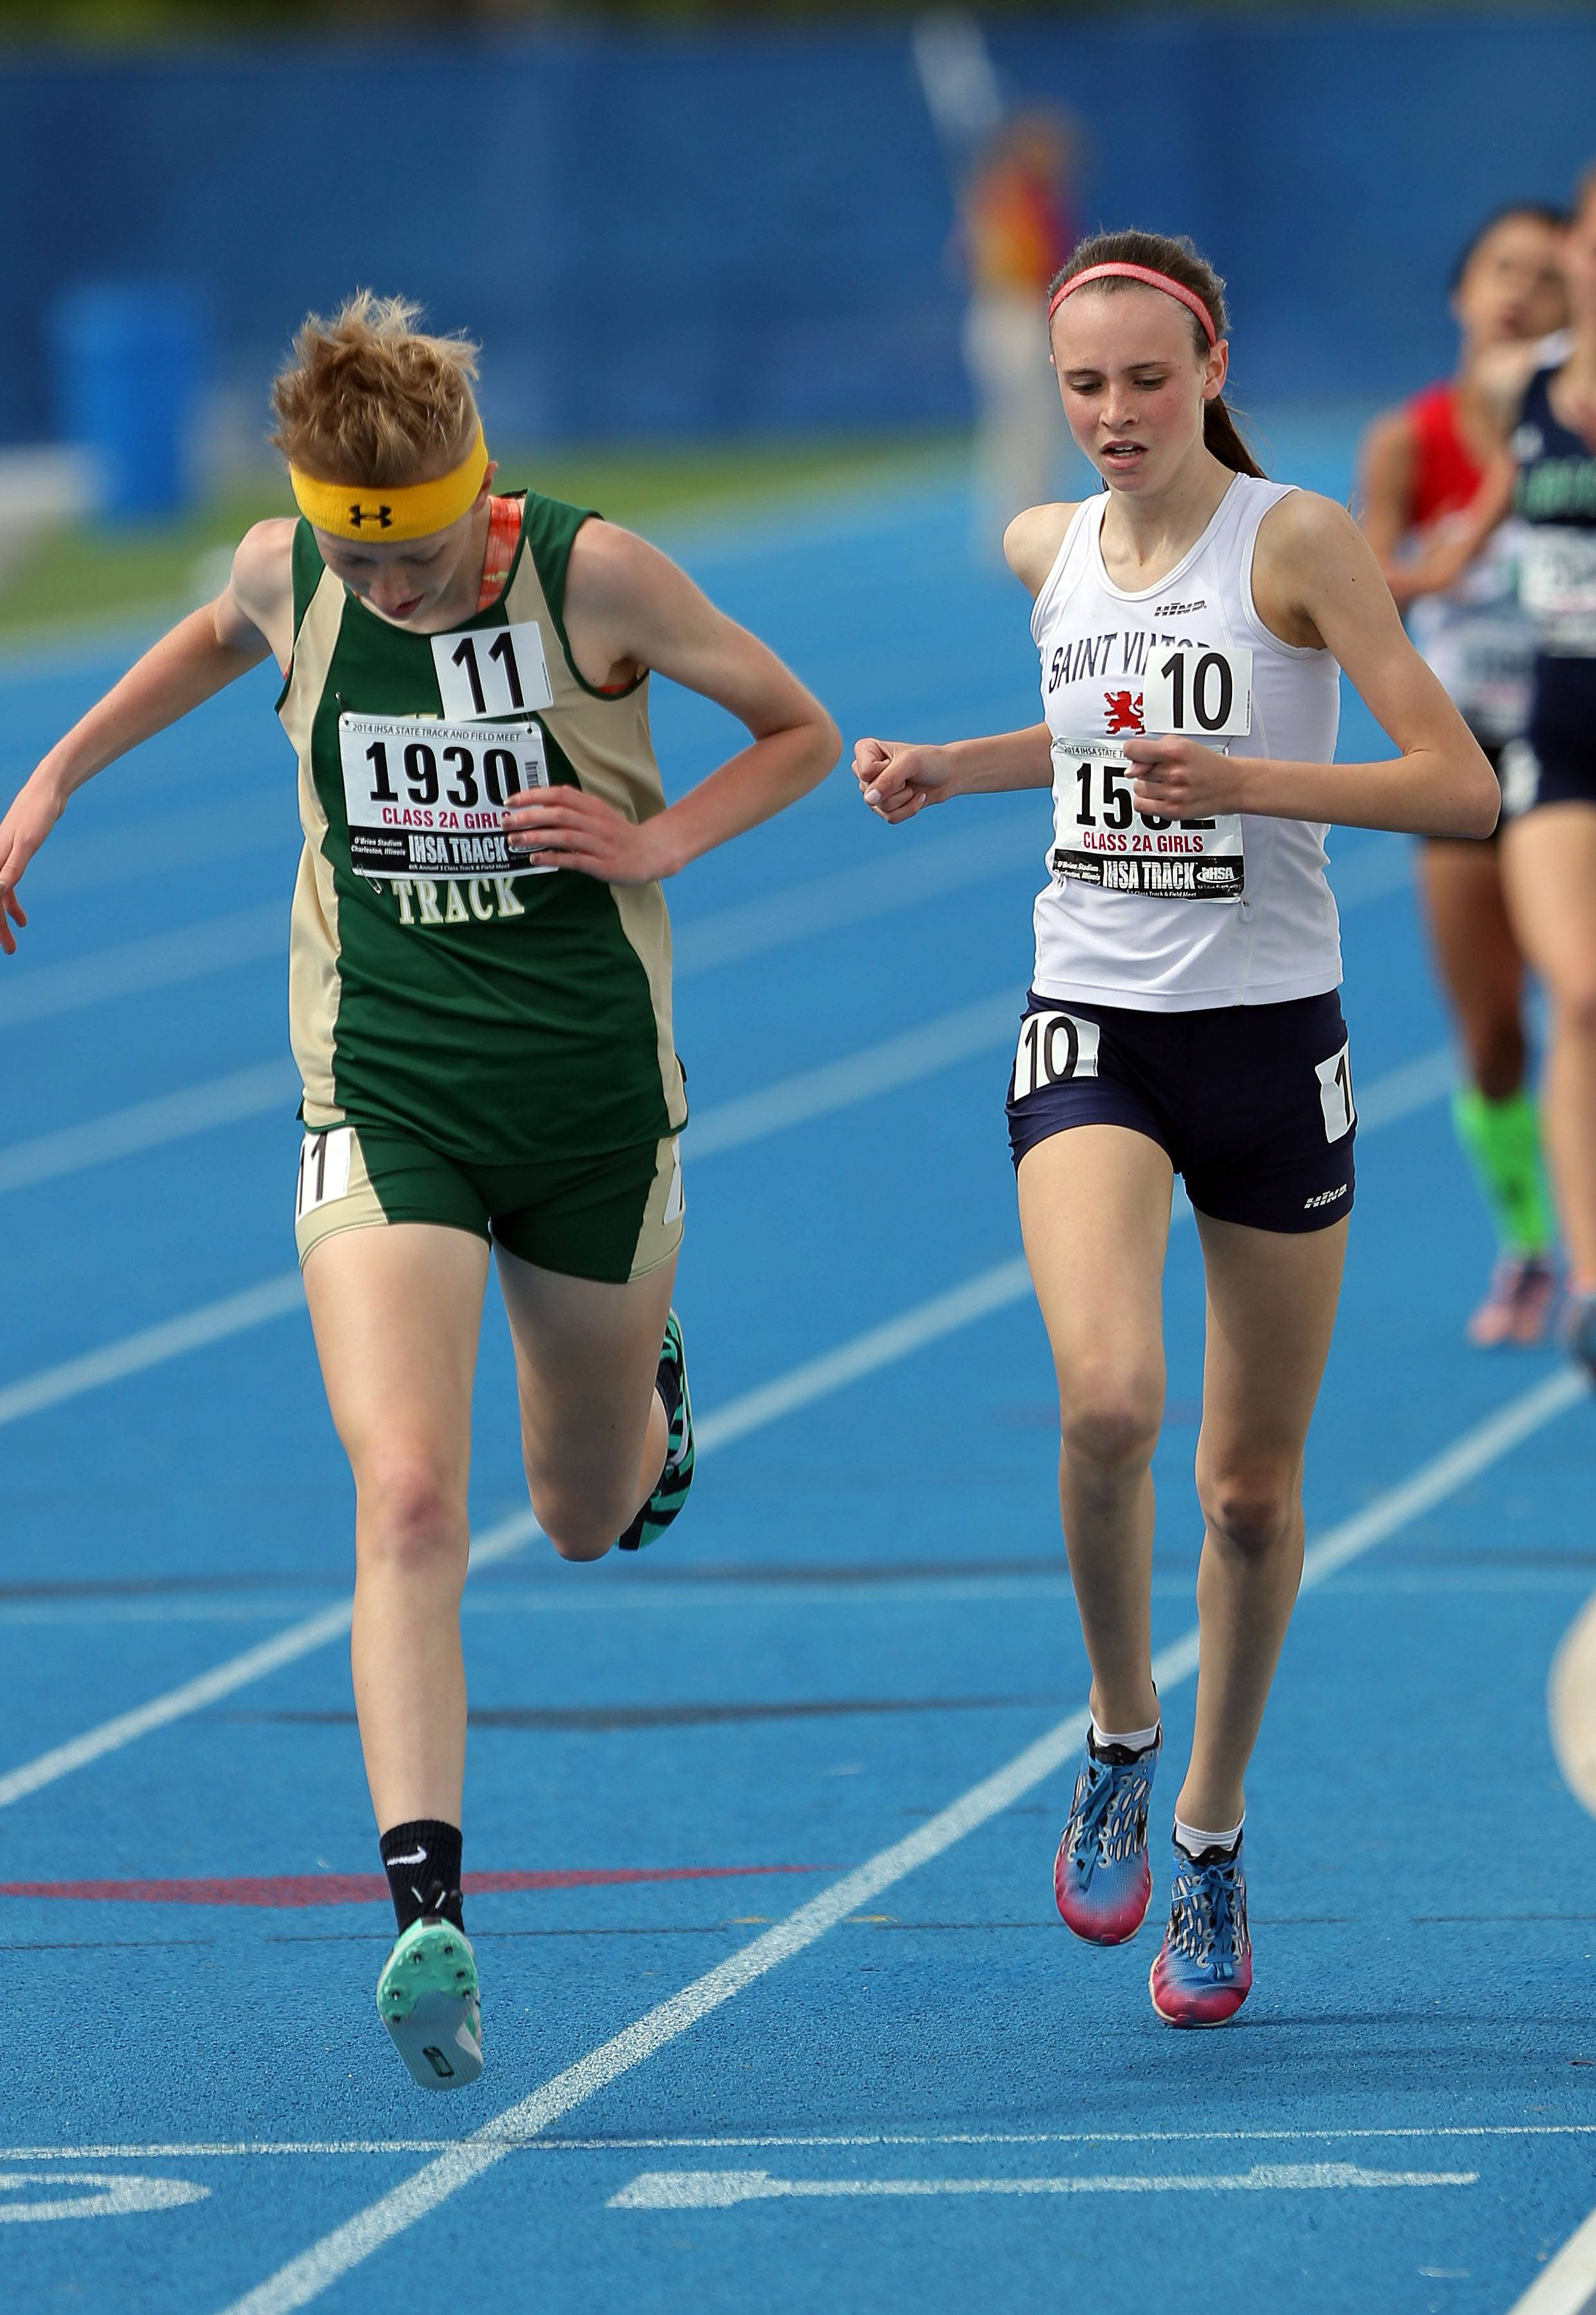 St. Viator's Meghan Carroll, right, is edged out at the finish line by Mattoon's Megan Shaffer in the class 2A 1600-meter run during the girls track and field state finals at Eastern Illinois University in Charleston Saturday.